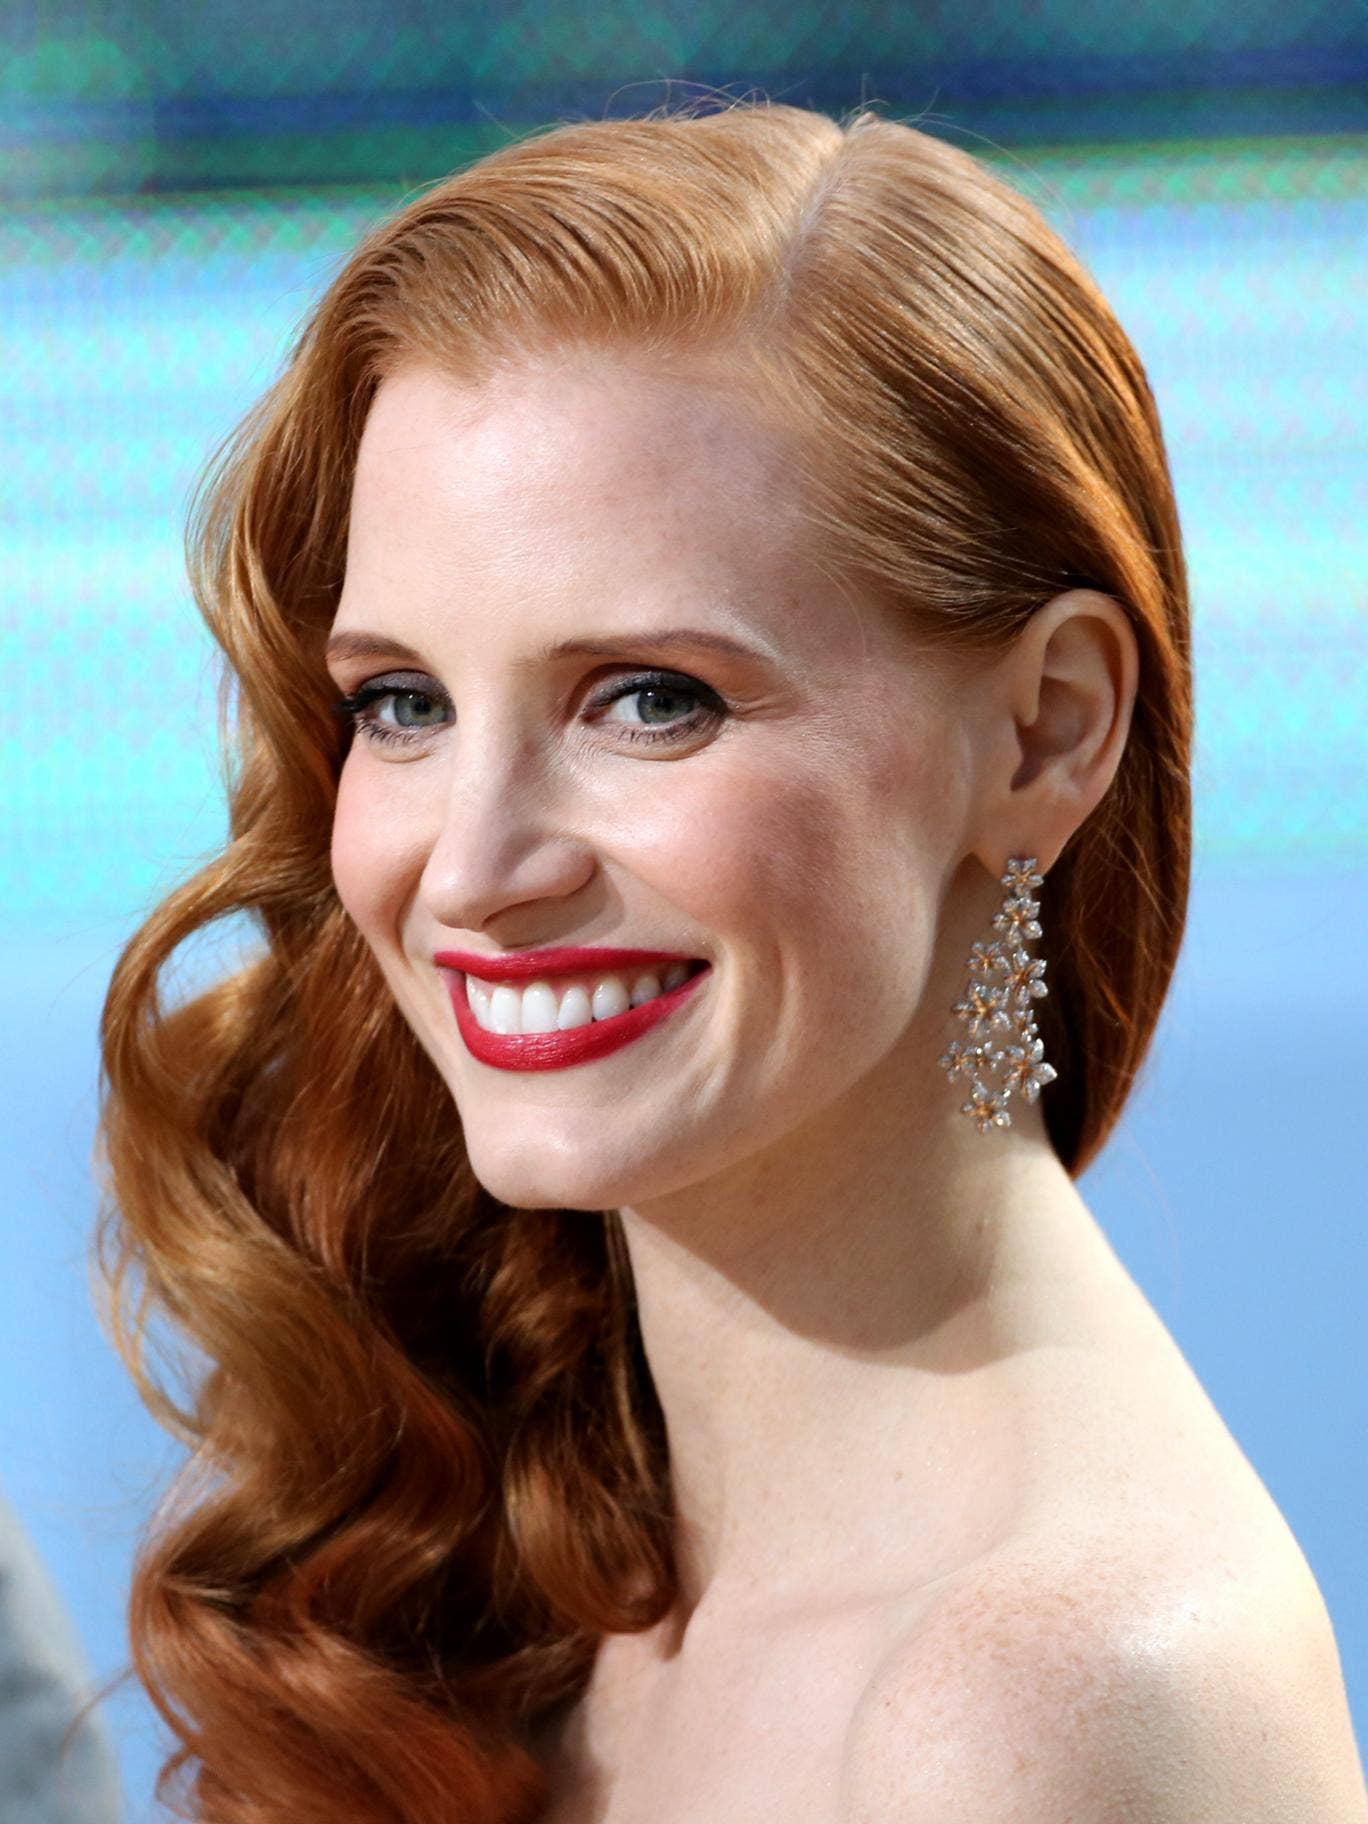 <p>Jessica Chastain is nominated for actress in a leading role for Zero Dark Thirty</p>